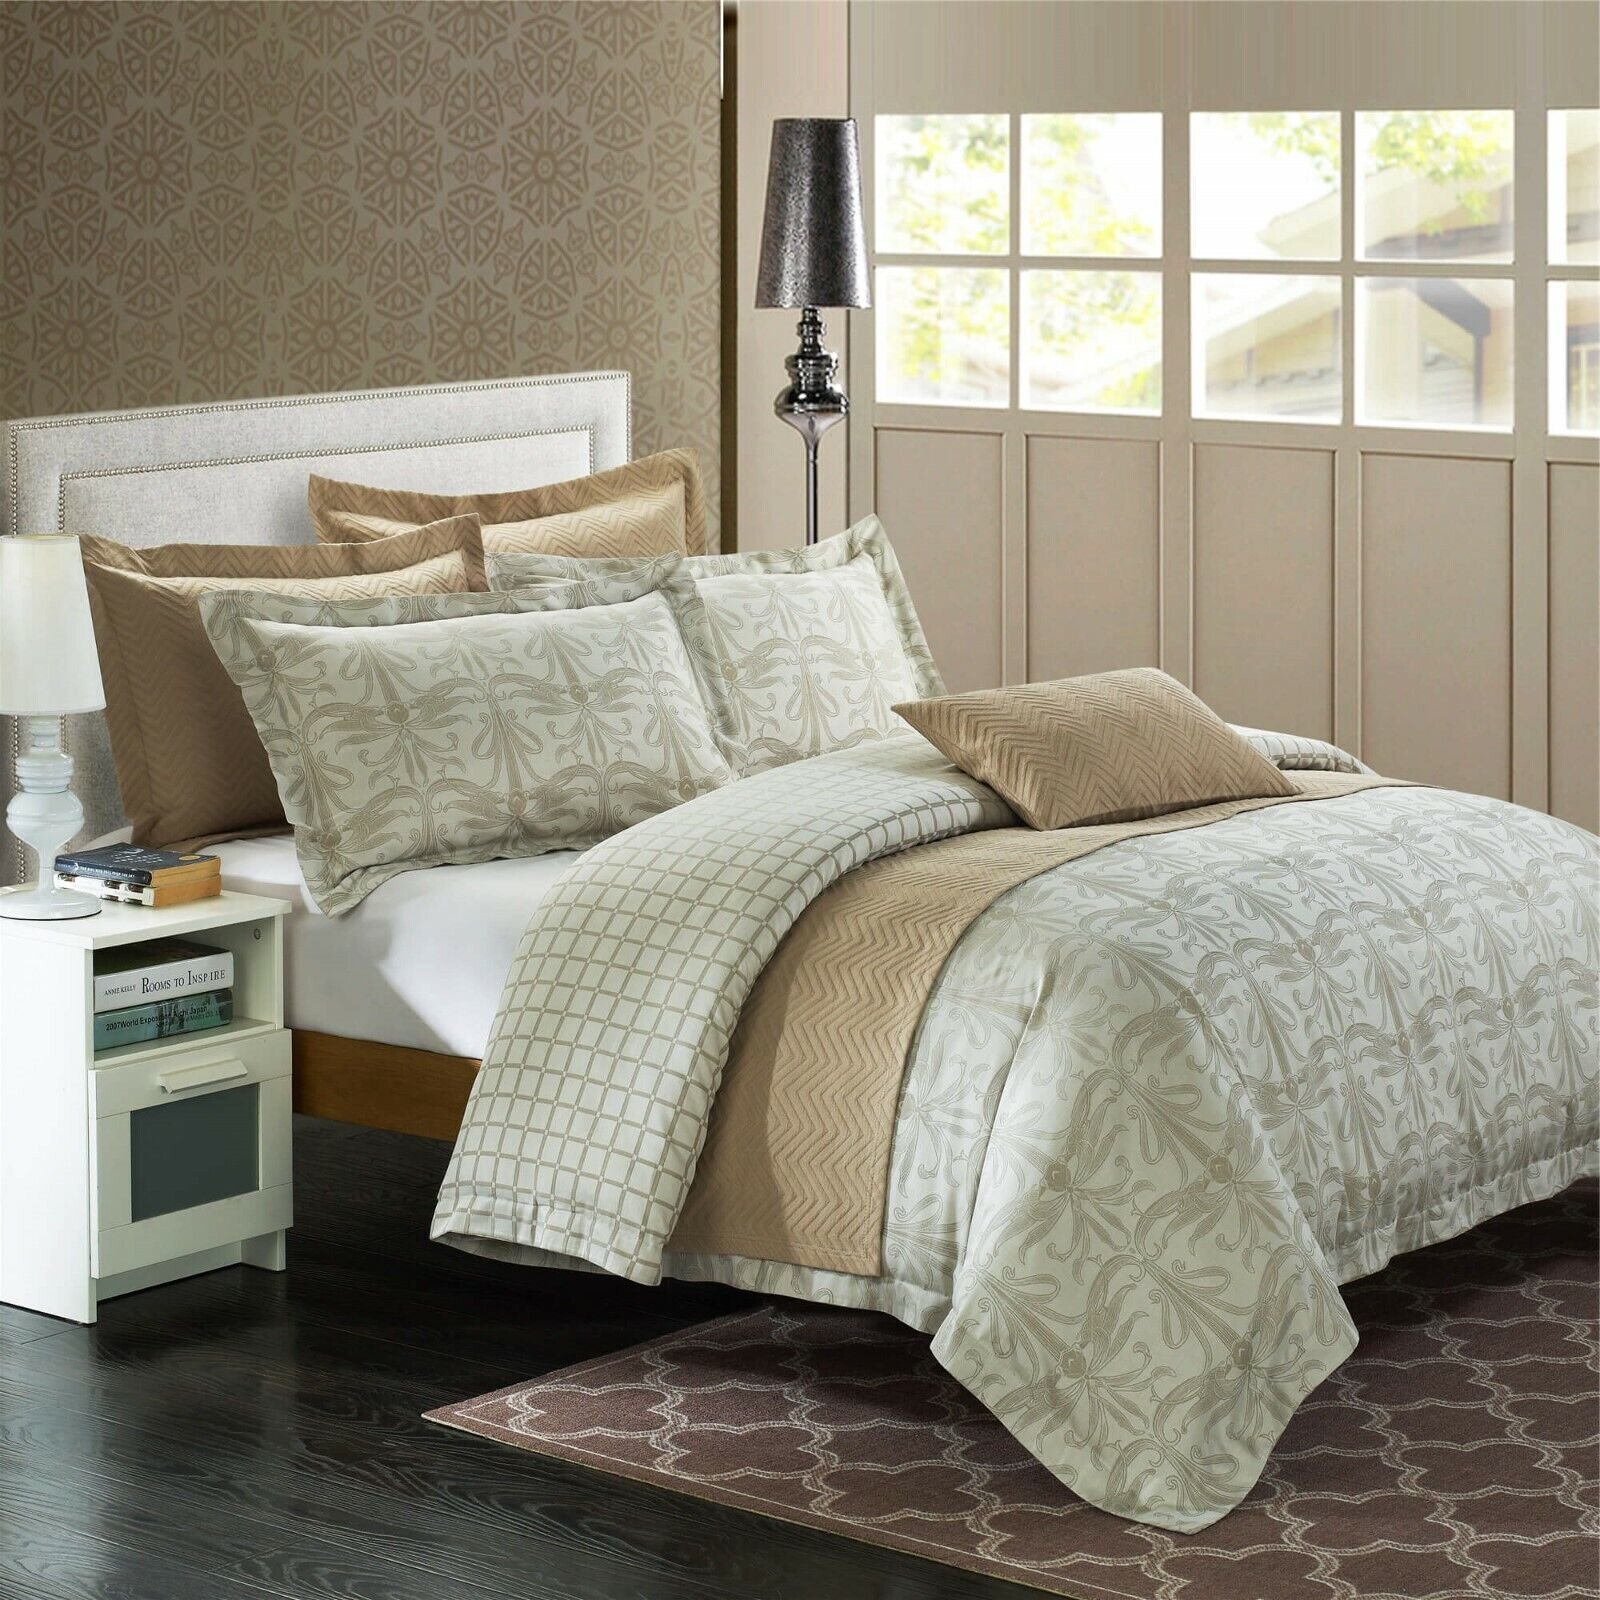 North Home Elite Regency Jacquard Cotton FULL QUEEN Bedding Ensemble 7pc   230